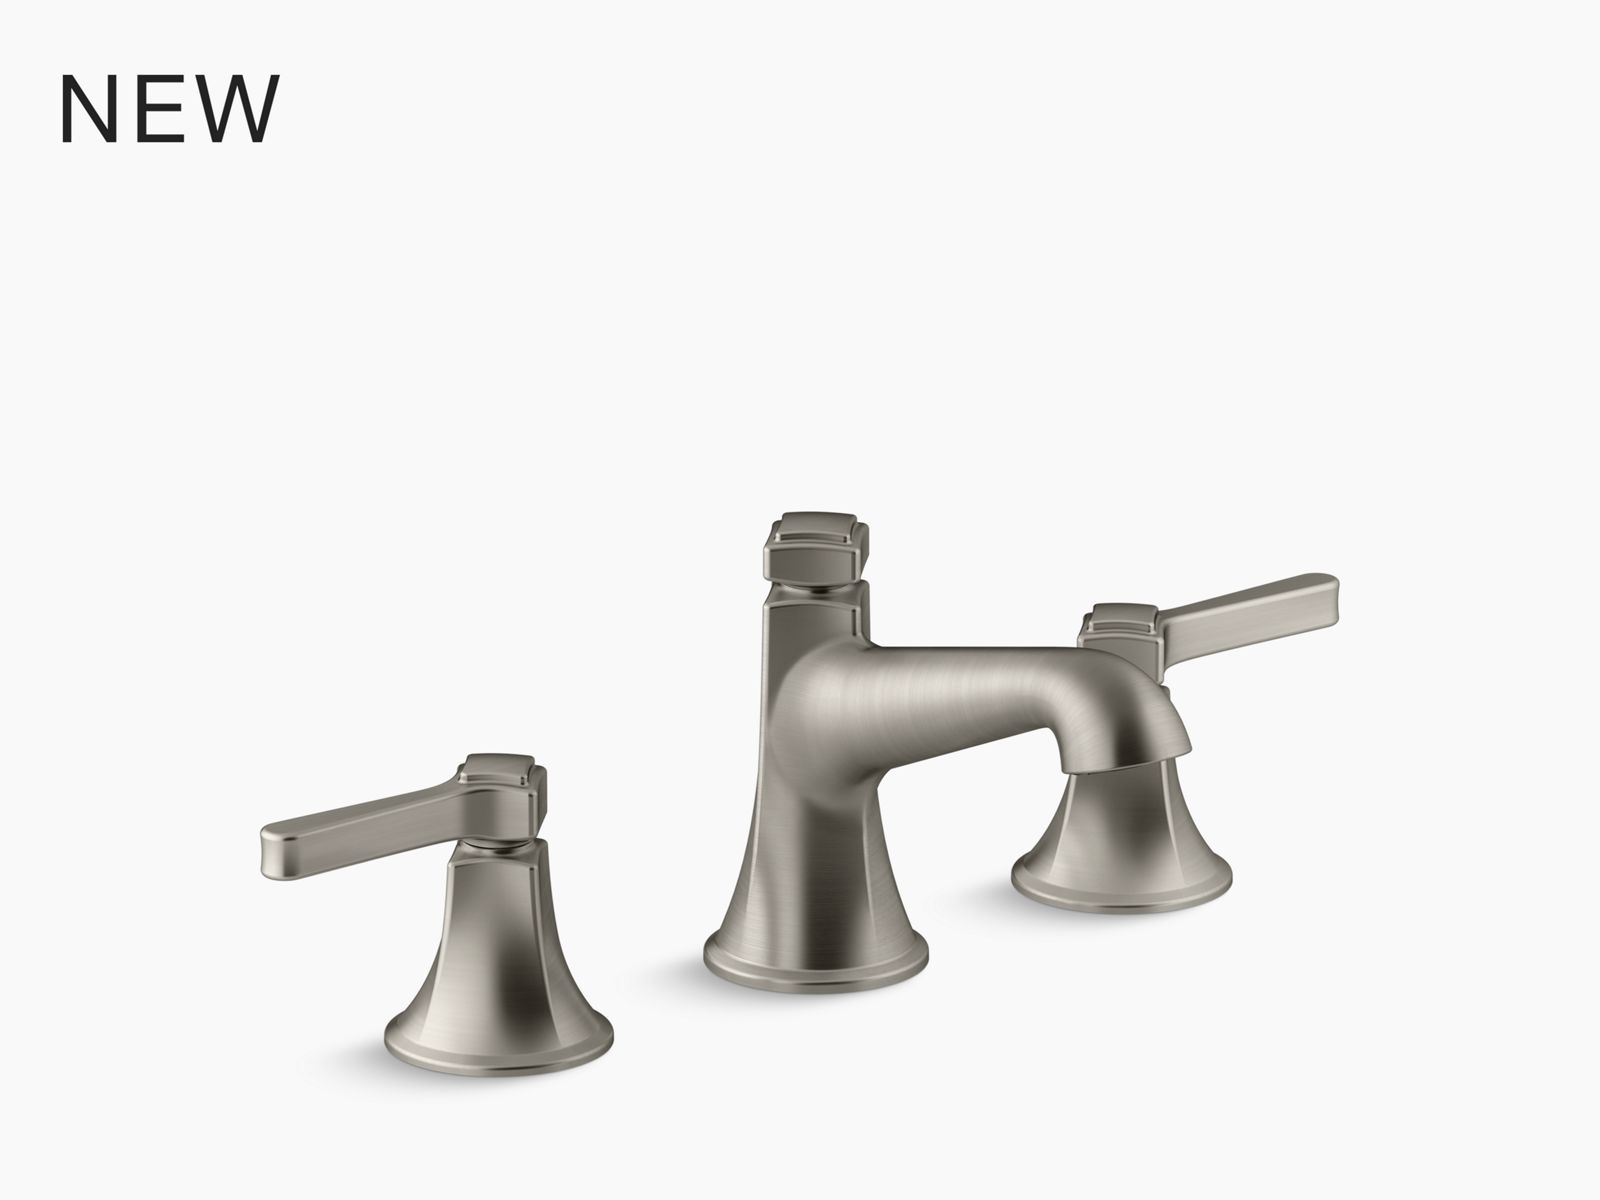 8 widespread lavatory faucet 942t 4